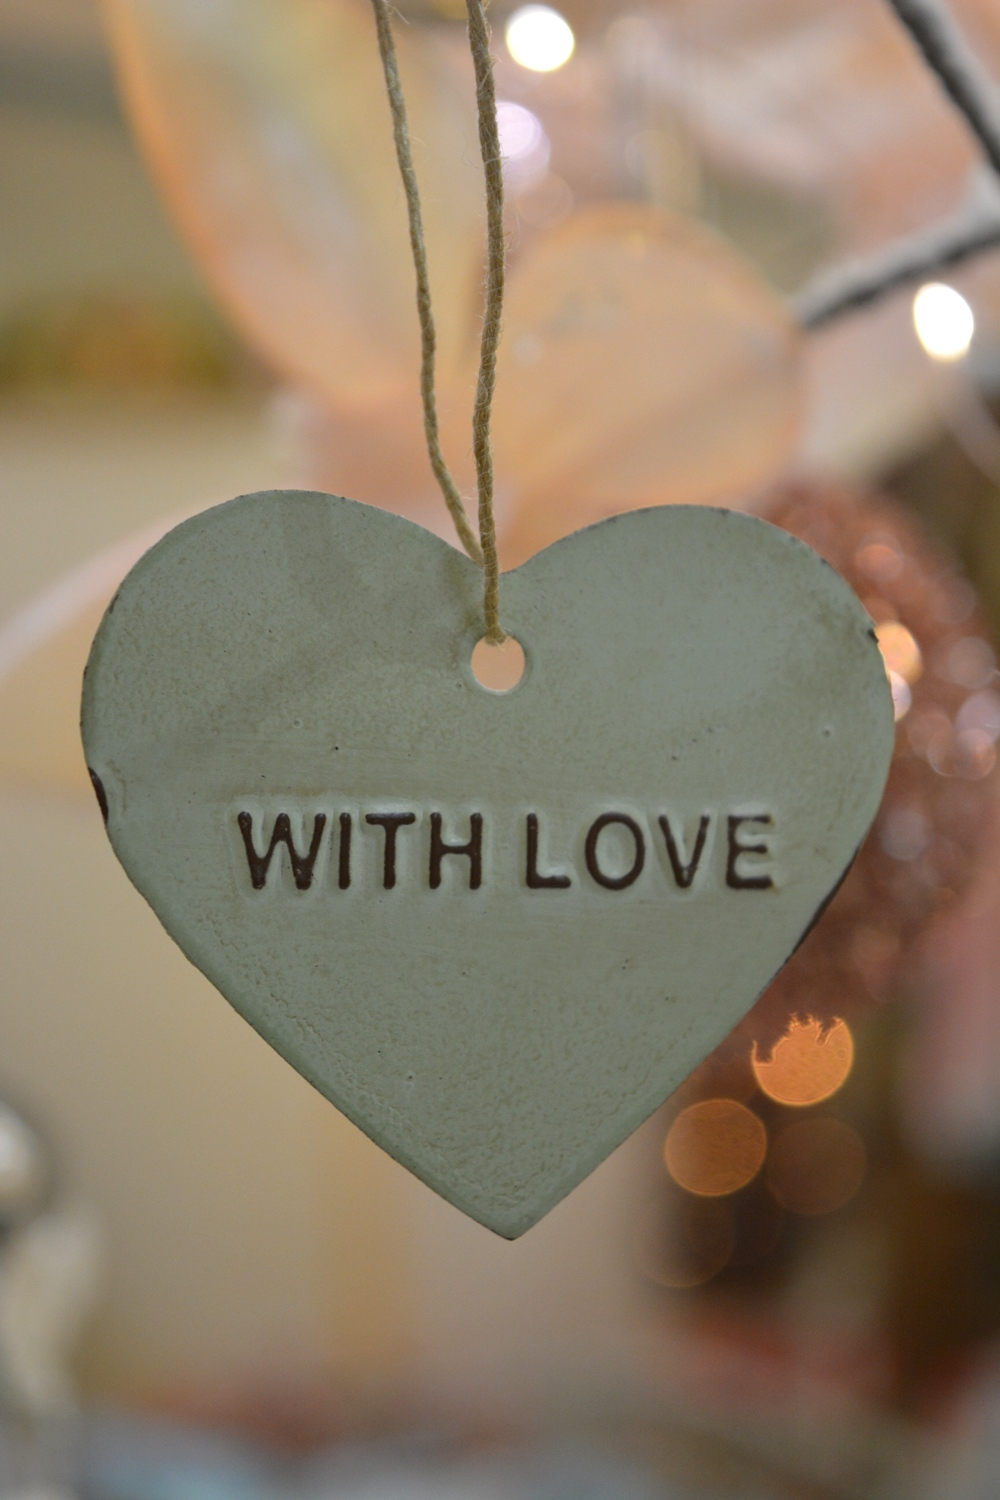 """Love Heart Gift Tag -        Normal   0           false   false   false     EN-US   X-NONE   X-NONE                                        MicrosoftInternetExplorer4                                                                                                                                                                                                                                                                                                                                            /* Style Definitions */  table.MsoNormalTable {mso-style-name:""""Table Normal""""; mso-tstyle-rowband-size:0; mso-tstyle-colband-size:0; mso-style-noshow:yes; mso-style-priority:99; mso-style-qformat:yes; mso-style-parent:""""""""; mso-padding-alt:0in 5.4pt 0in 5.4pt; mso-para-margin-top:0in; mso-para-margin-right:0in; mso-para-margin-bottom:10.0pt; mso-para-margin-left:0in; line-height:115%; mso-pagination:widow-orphan; font-size:11.0pt; font-family:""""Calibri"""",""""sans-serif""""; mso-ascii-font-family:Calibri; mso-ascii-theme-font:minor-latin; mso-fareast-font-family:""""Times New Roman""""; mso-fareast-theme-font:minor-fareast; mso-hansi-font-family:Calibri; mso-hansi-theme-font:minor-latin;}    €0.90"""